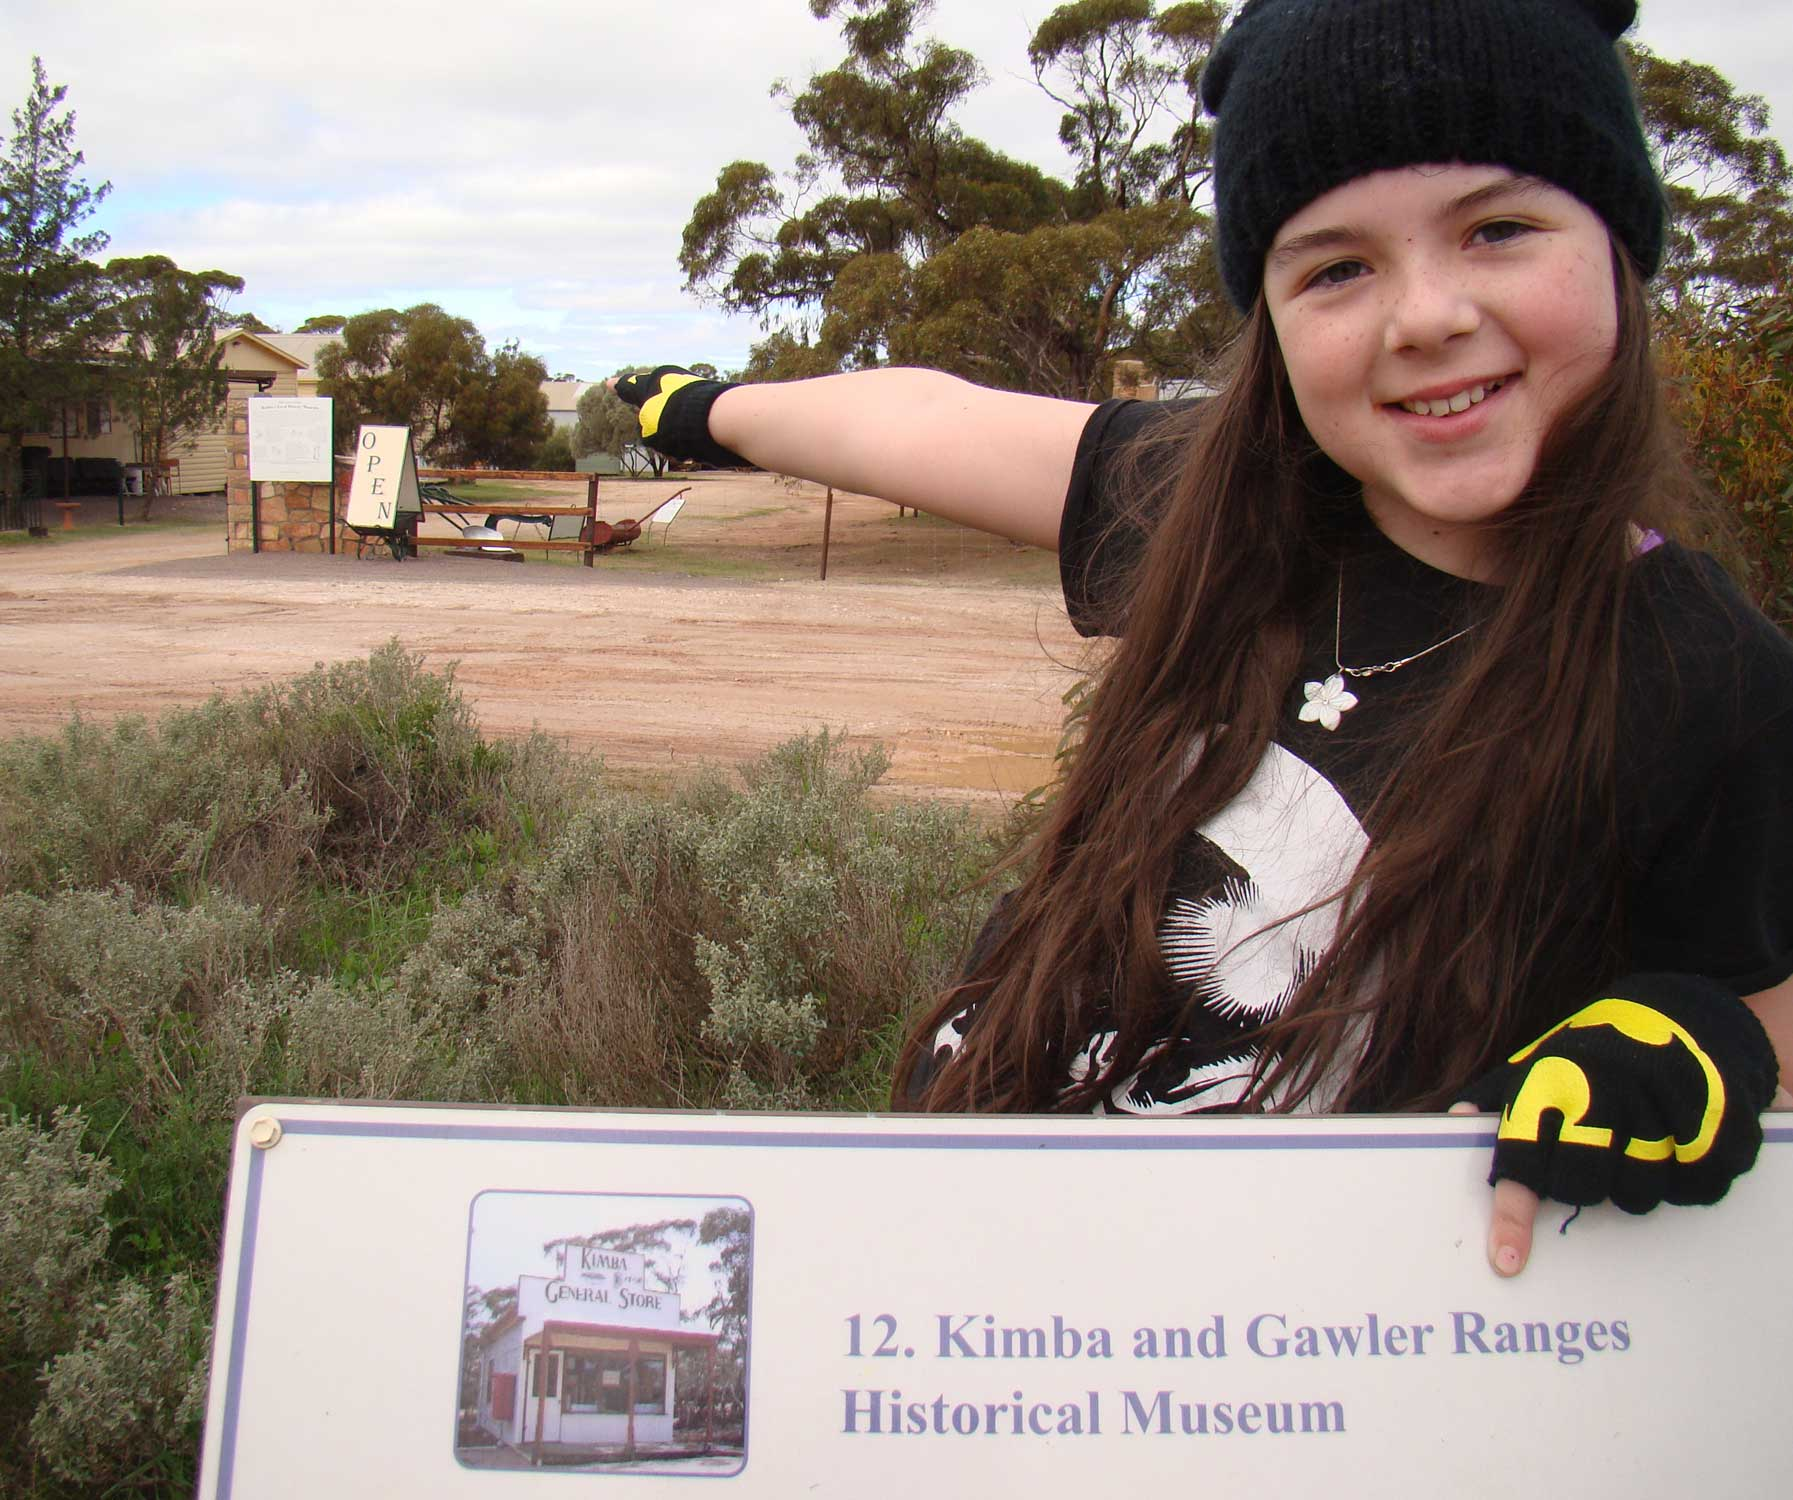 Tookii things to do with kids Kimba and Gawler Ranges Museum one of the activities for kids